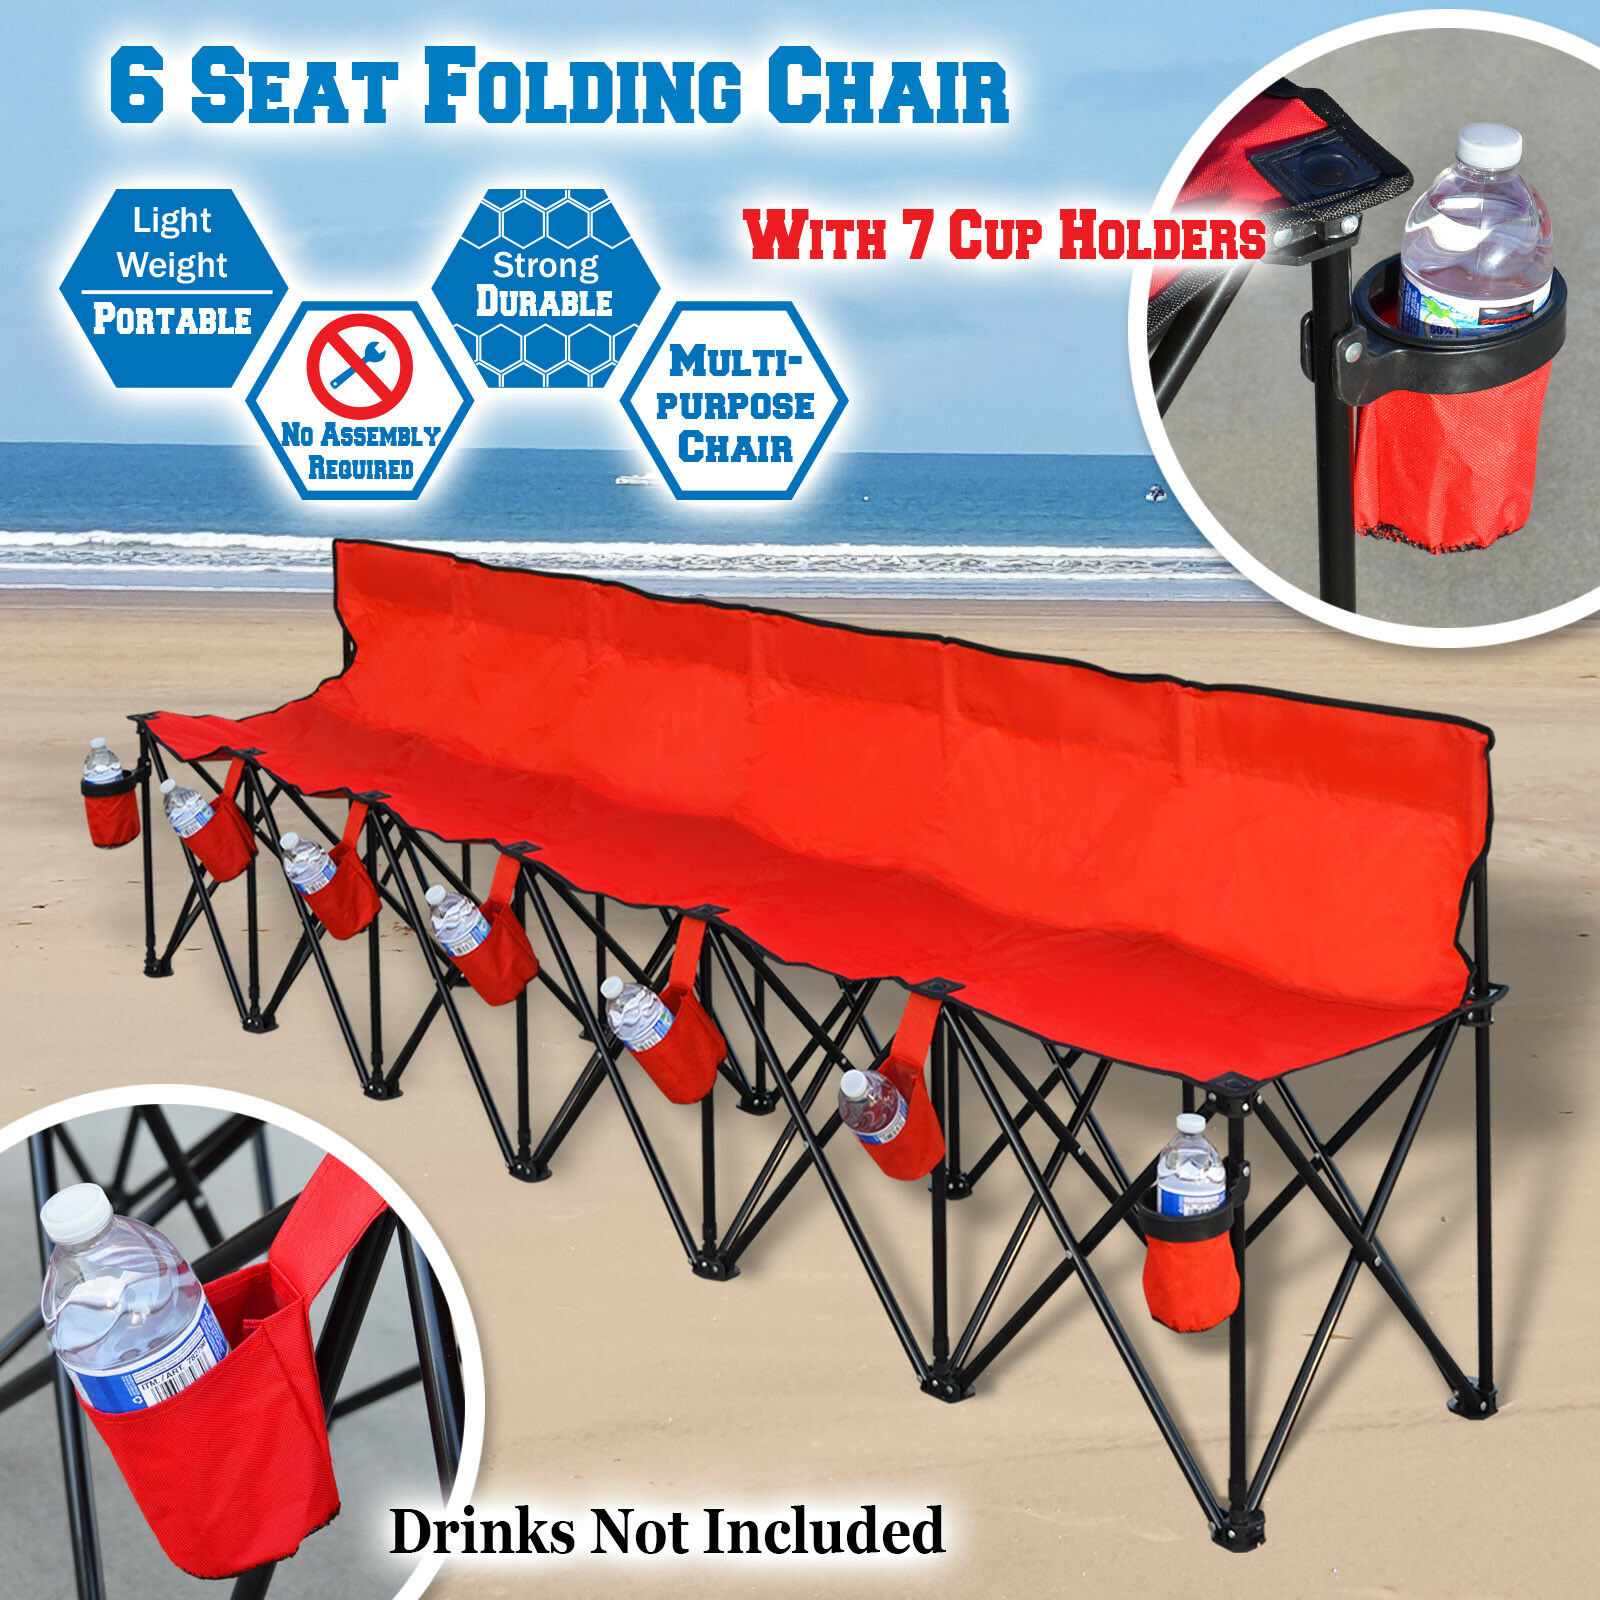 Phenomenal Portable 6 Seater Folding Bench Sport Sideline Chair W Bag 7 Red Cup Holders Dailytribune Chair Design For Home Dailytribuneorg